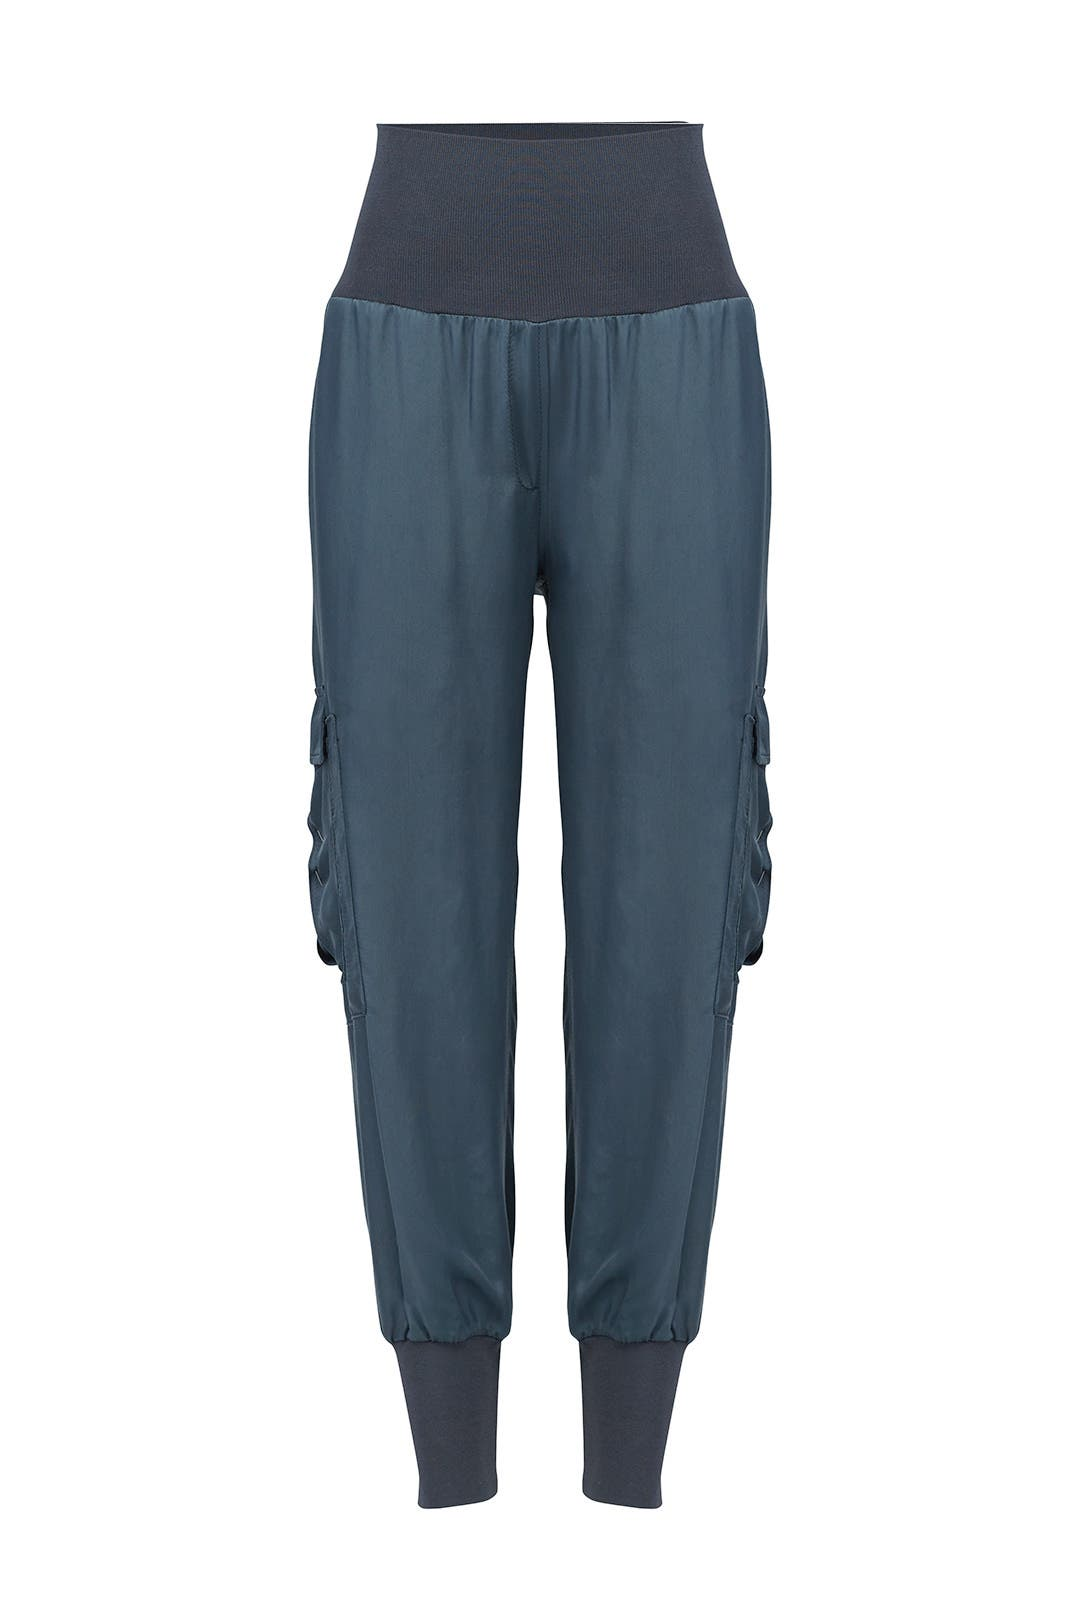 Clearance Collections New Arrival Fashion TROUSERS - Casual trousers Giles n8xlhFsv